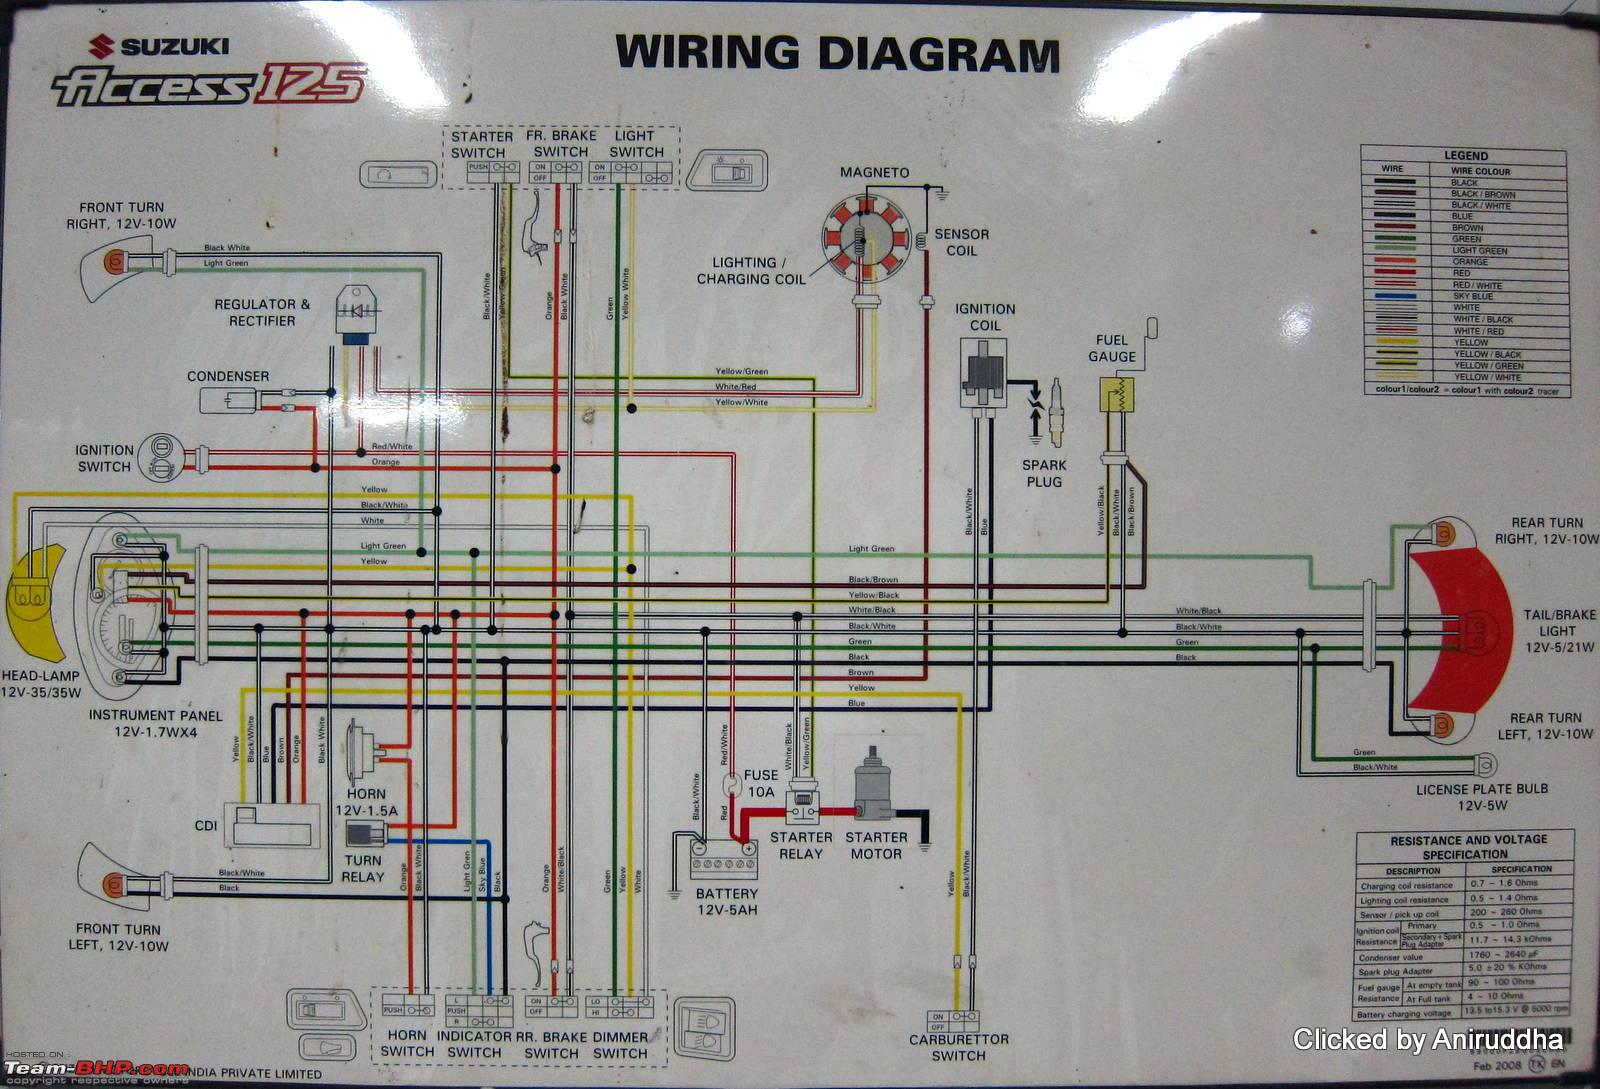 bajaj bike wiring diagram layout wiring diagrams u2022 rh laurafinlay co uk  bajaj avenger wiring diagram